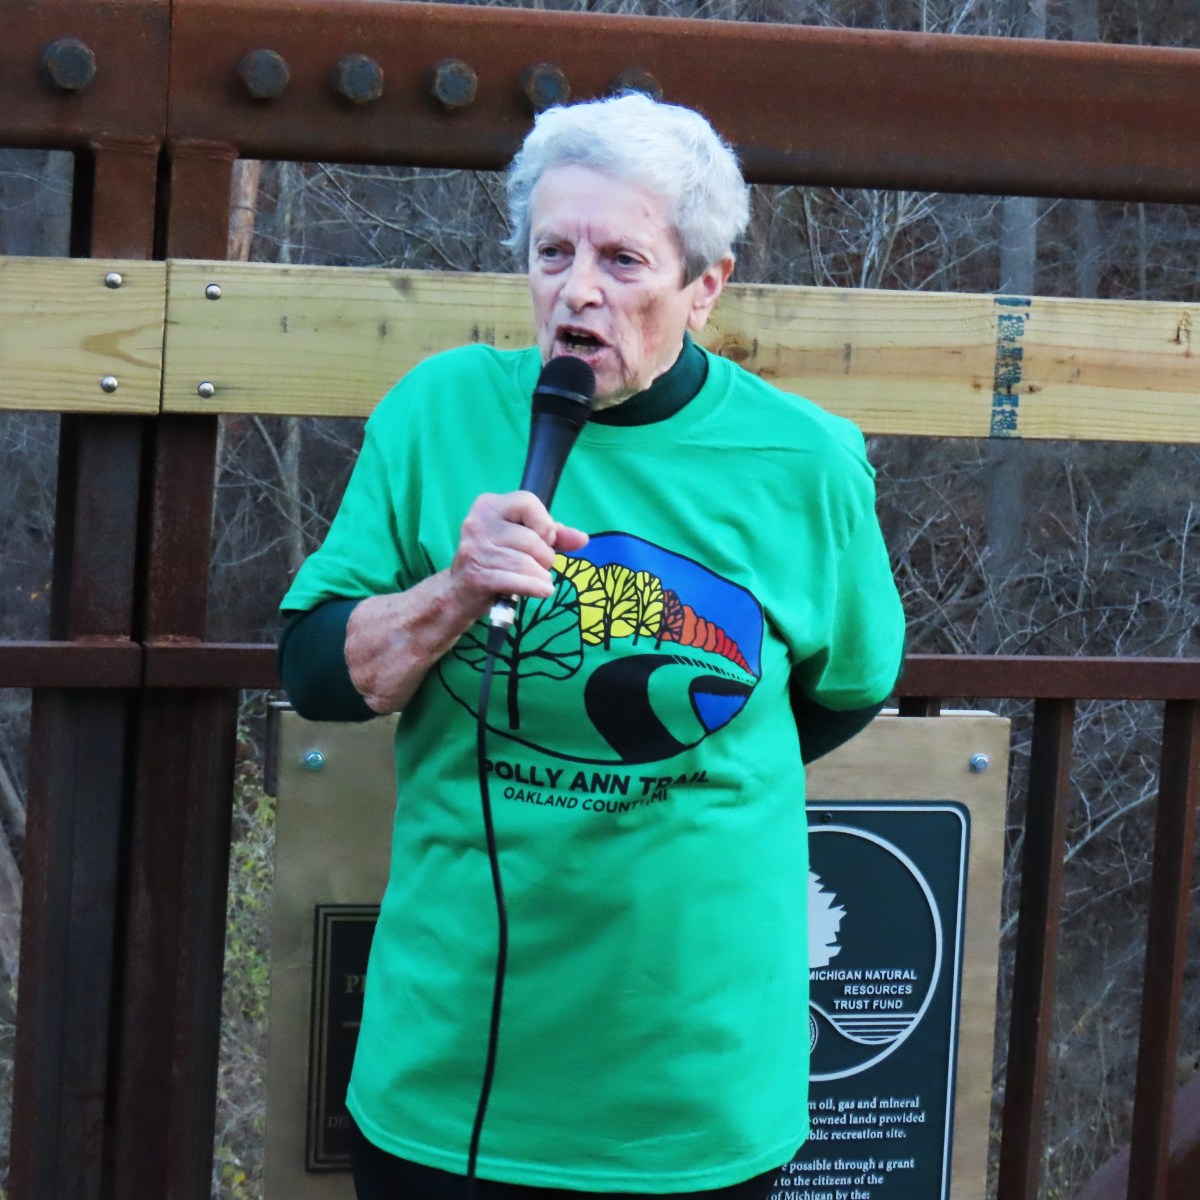 JoAnn Van Tassel speaks into a microphone at the bridge dedication